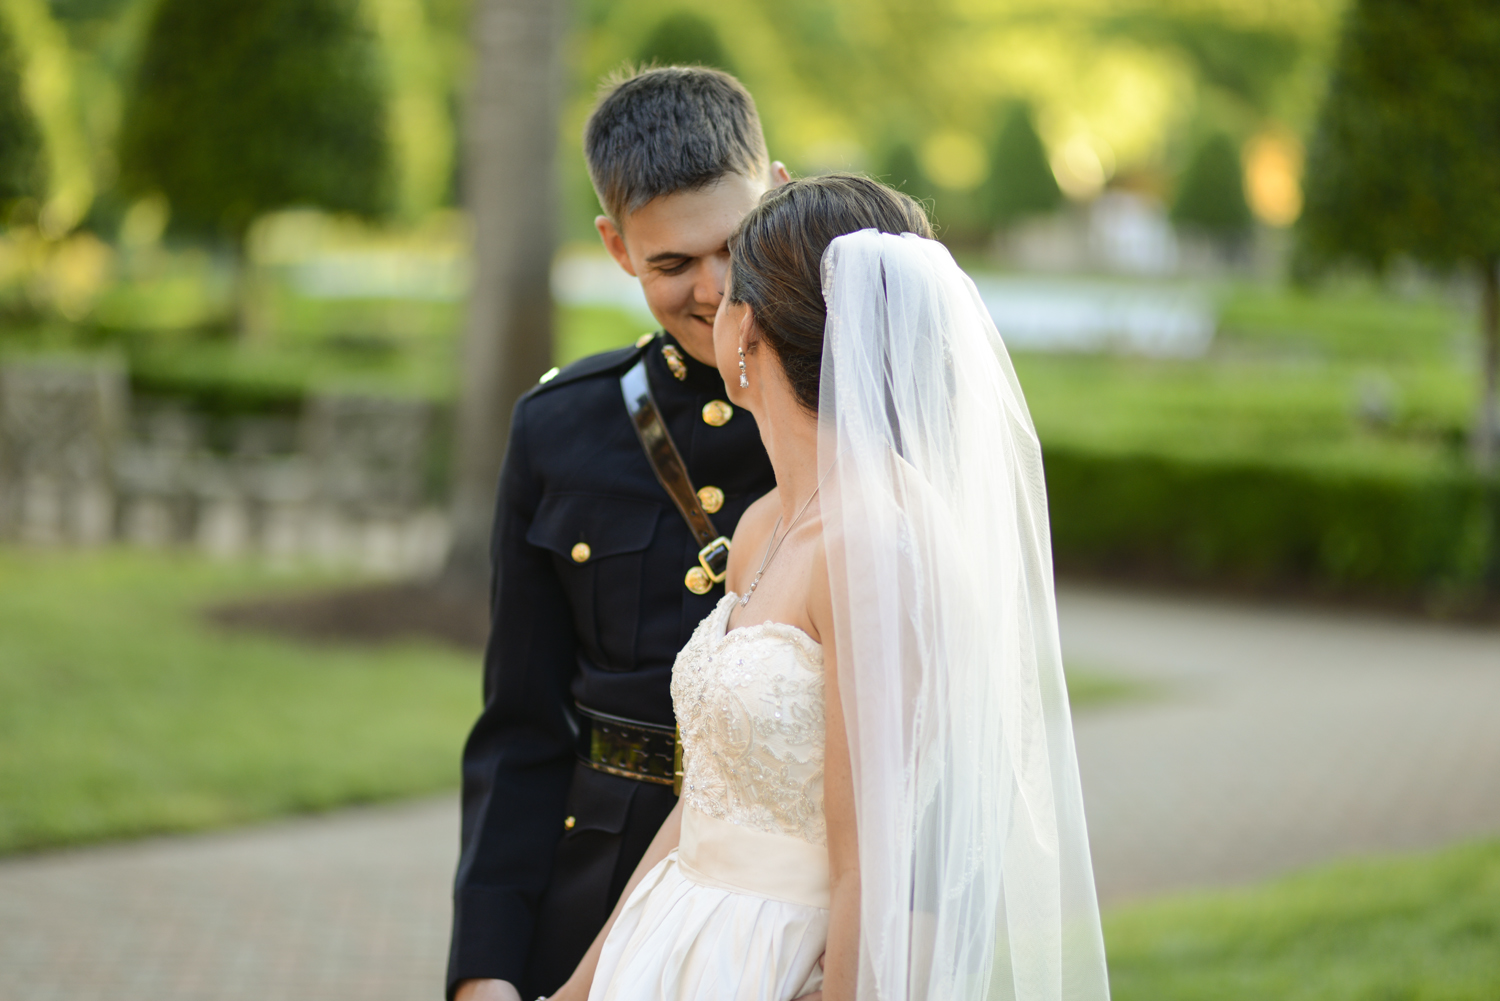 Bride and groom share a sweet moment after the ceremony |Maria Grace Photography